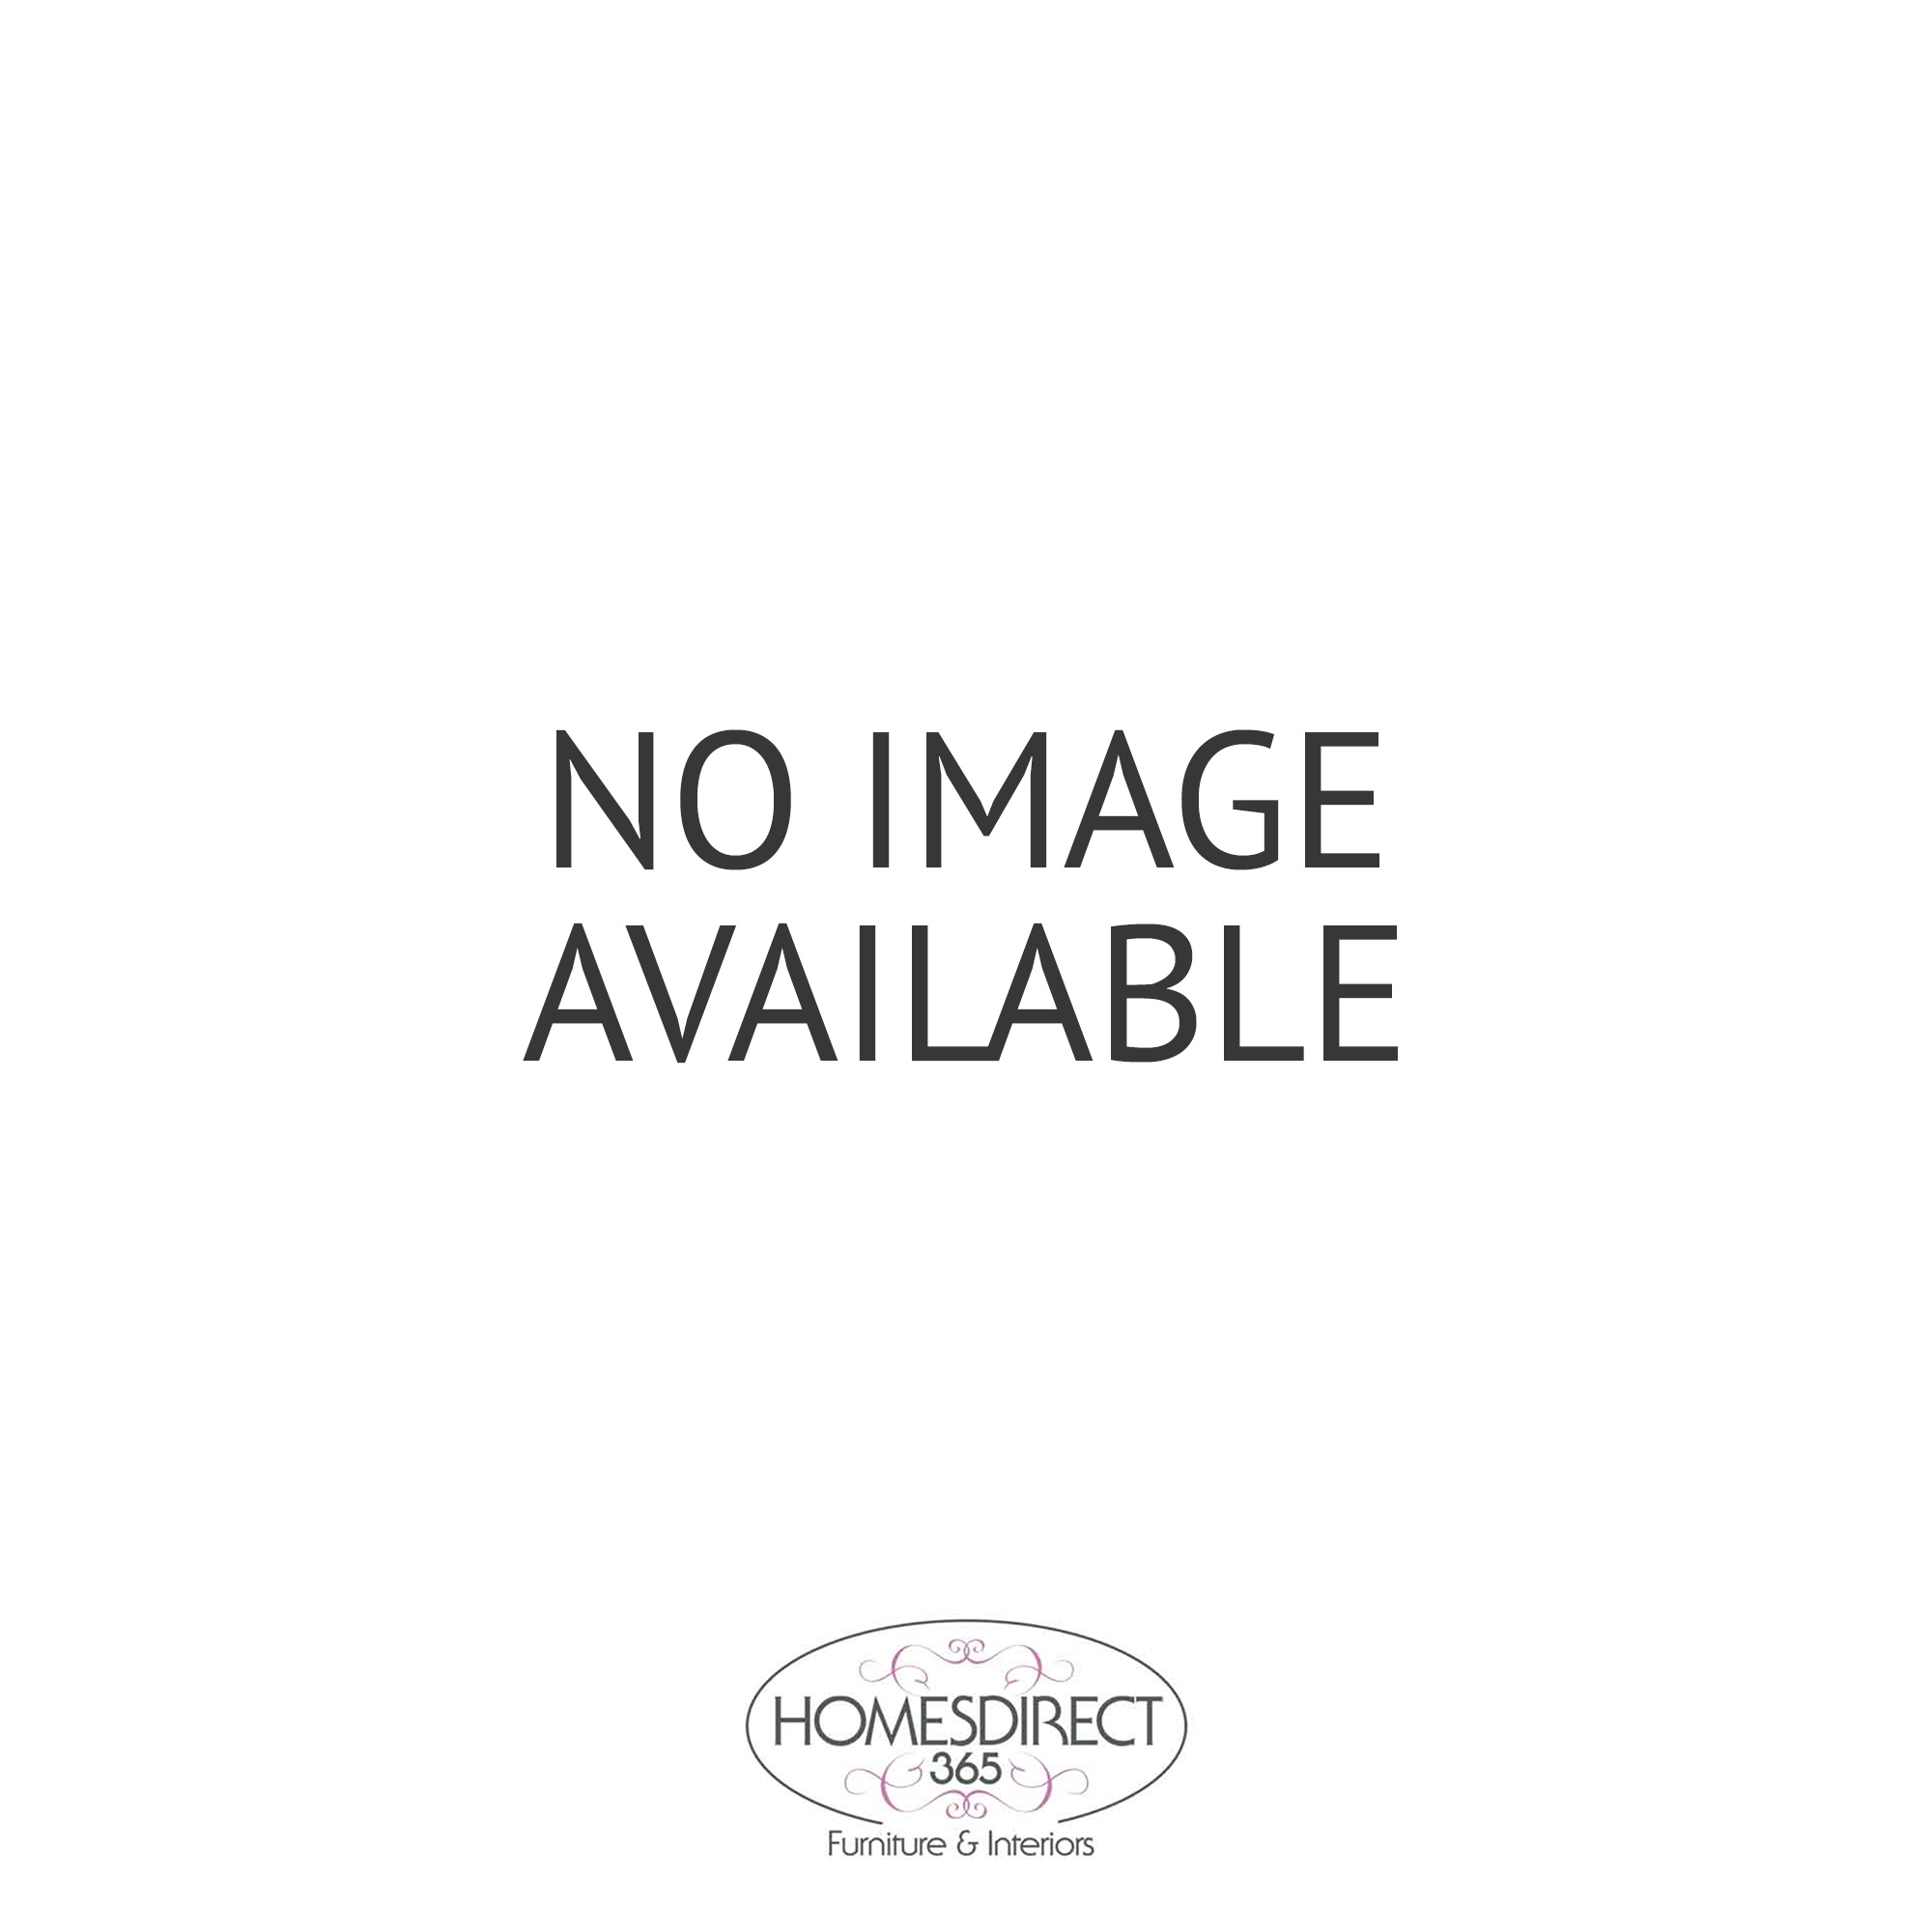 Teak Root Bench Rustic Small Modern Garden Furniture